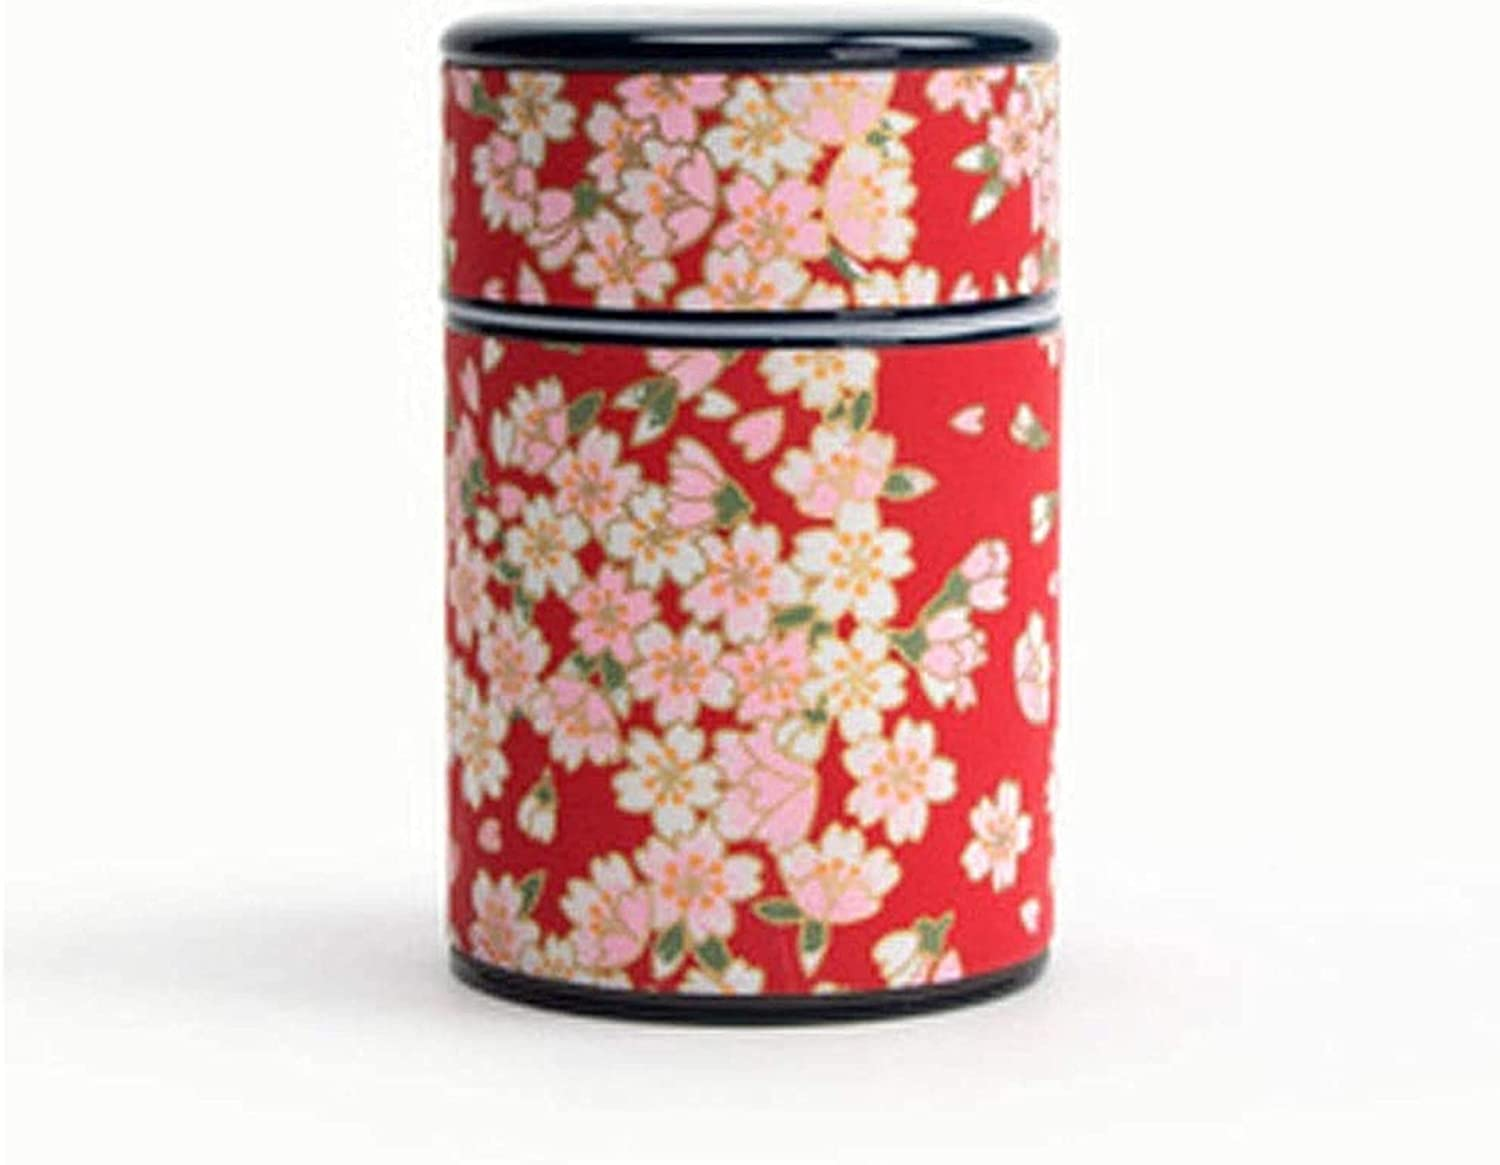 MTFZD Pet Cremation Urn Ashes Funeral for Ur Free Genuine Free Shipping Shipping New